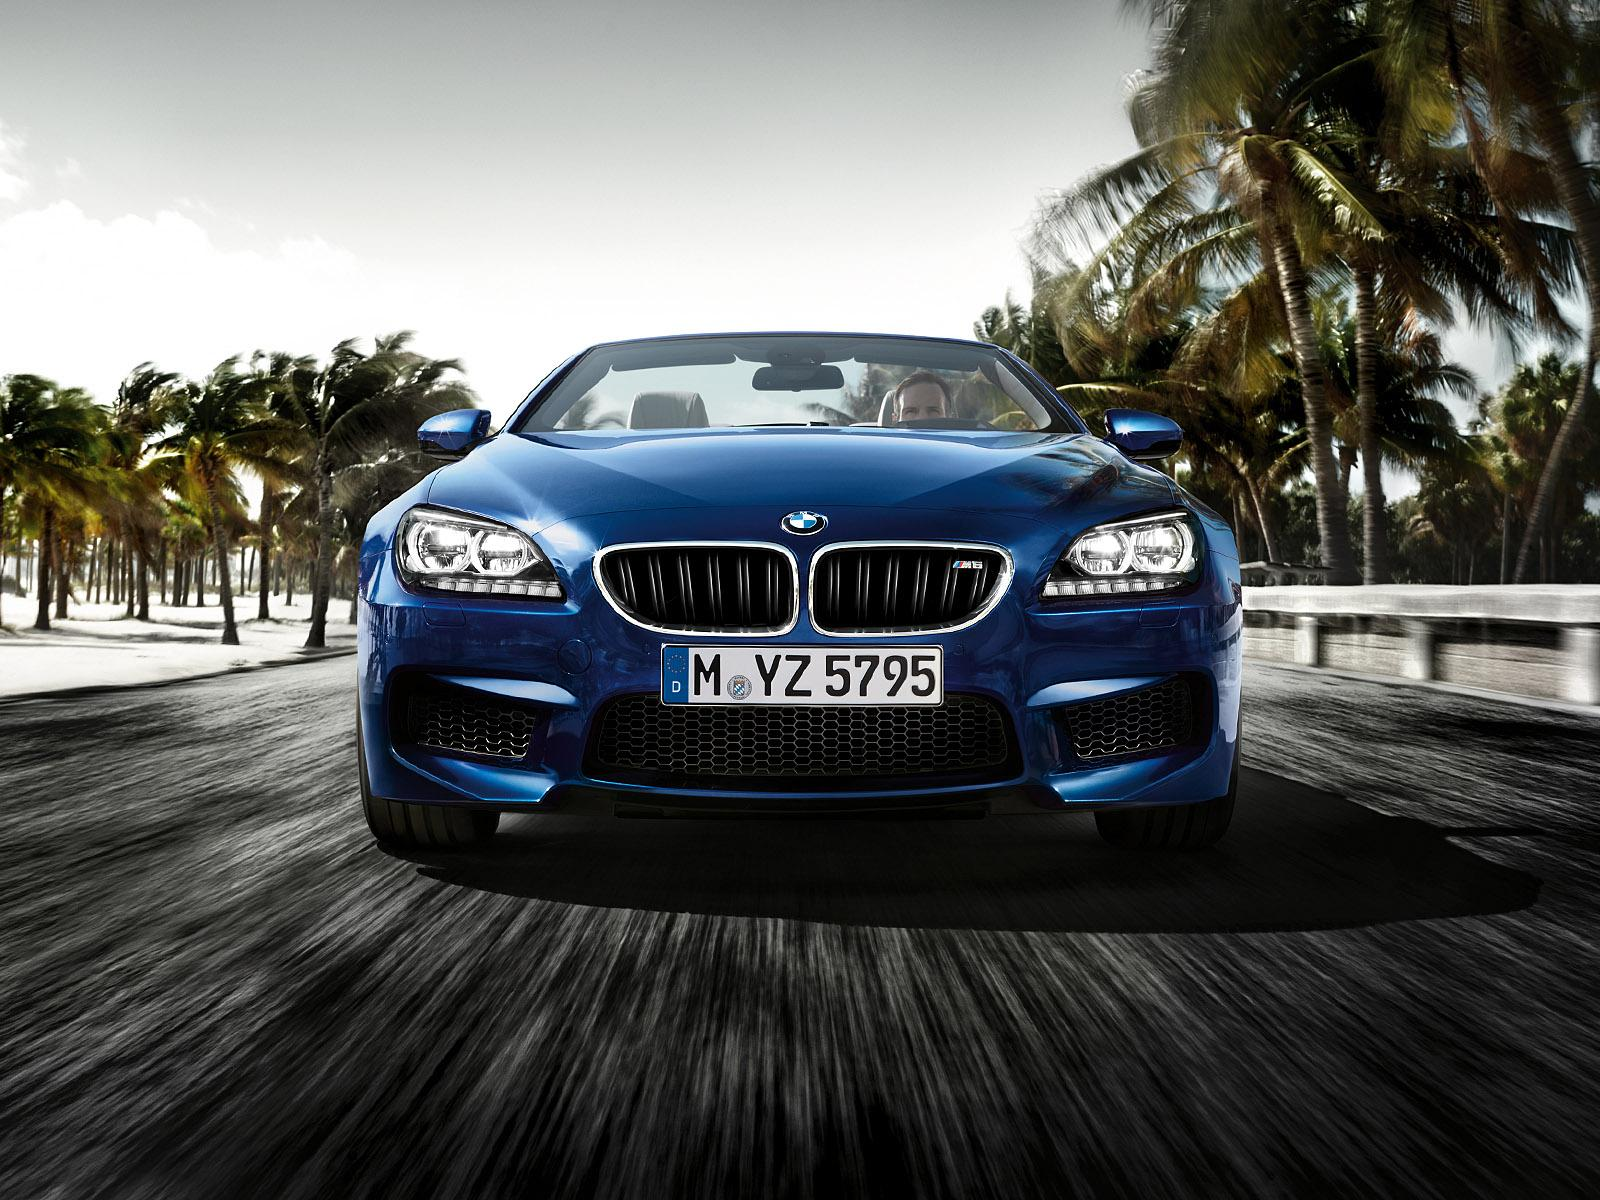 2013 bmw m6 coupe convertible promo videos new hi res images. Black Bedroom Furniture Sets. Home Design Ideas